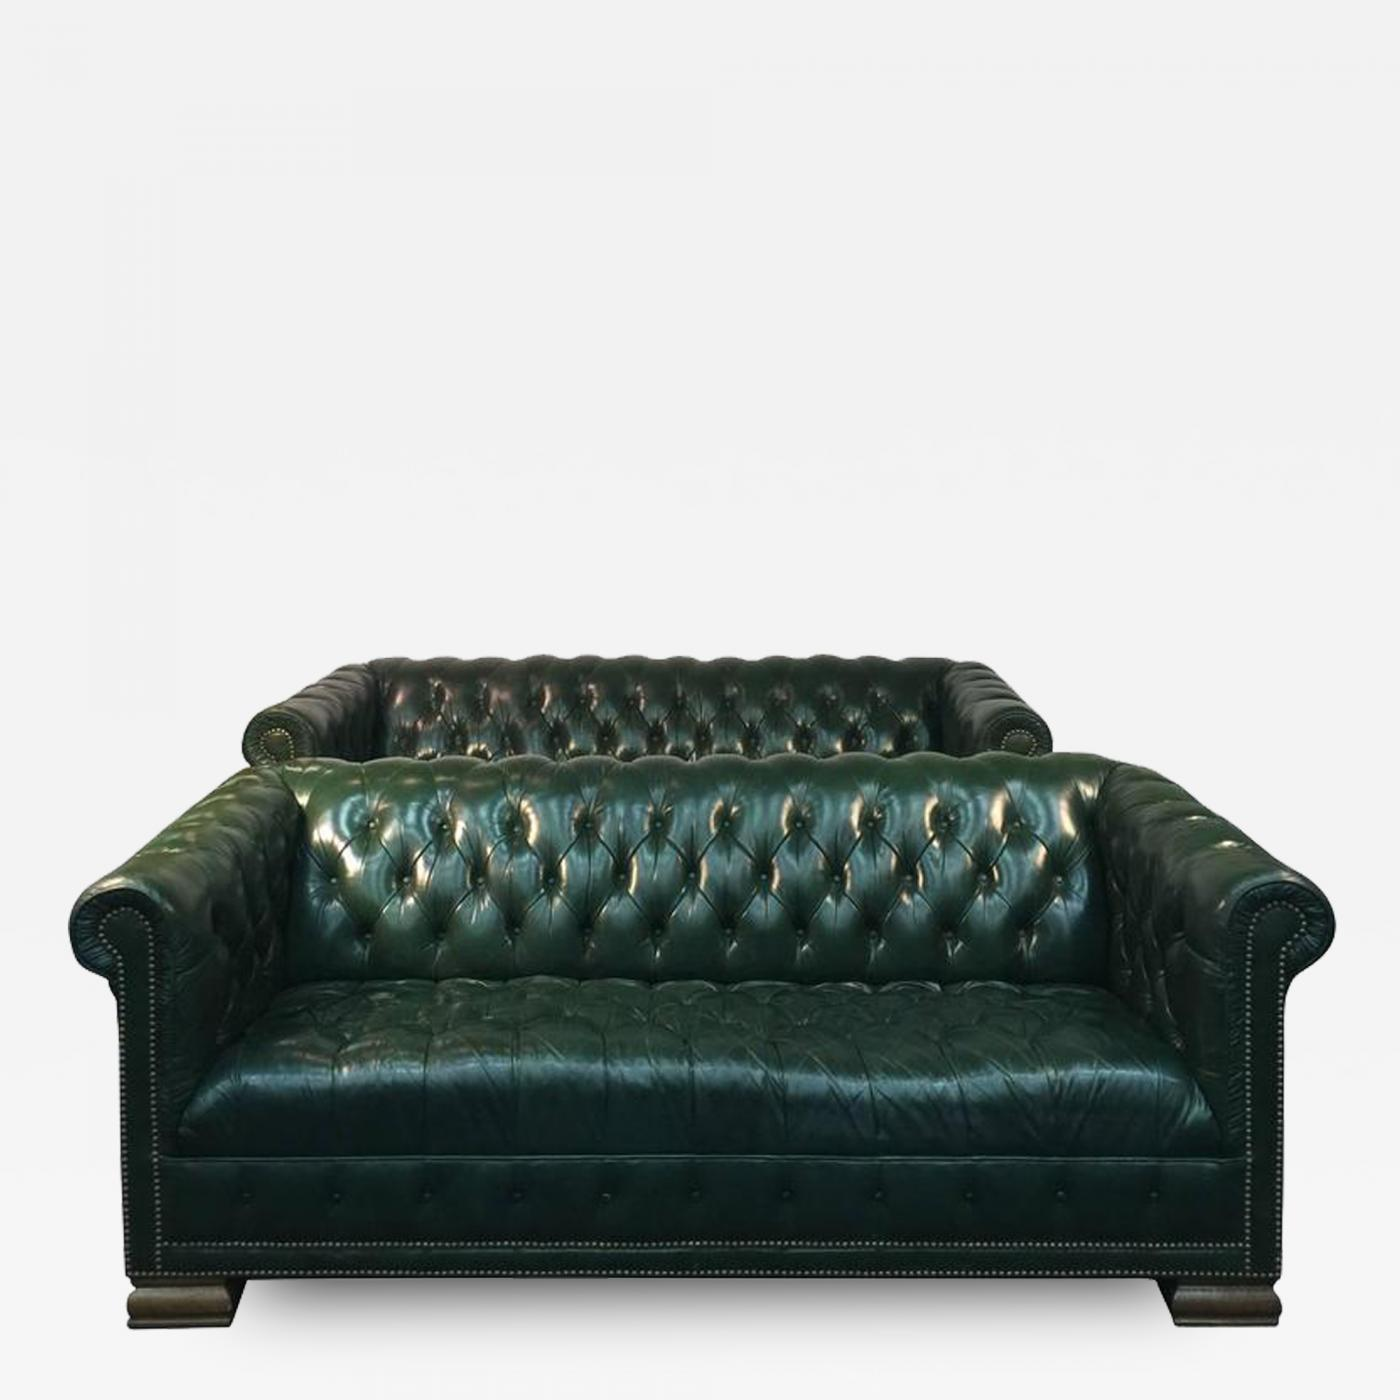 Rare Pair Of Vintage Chesterfield Sofas In Hunter Green With